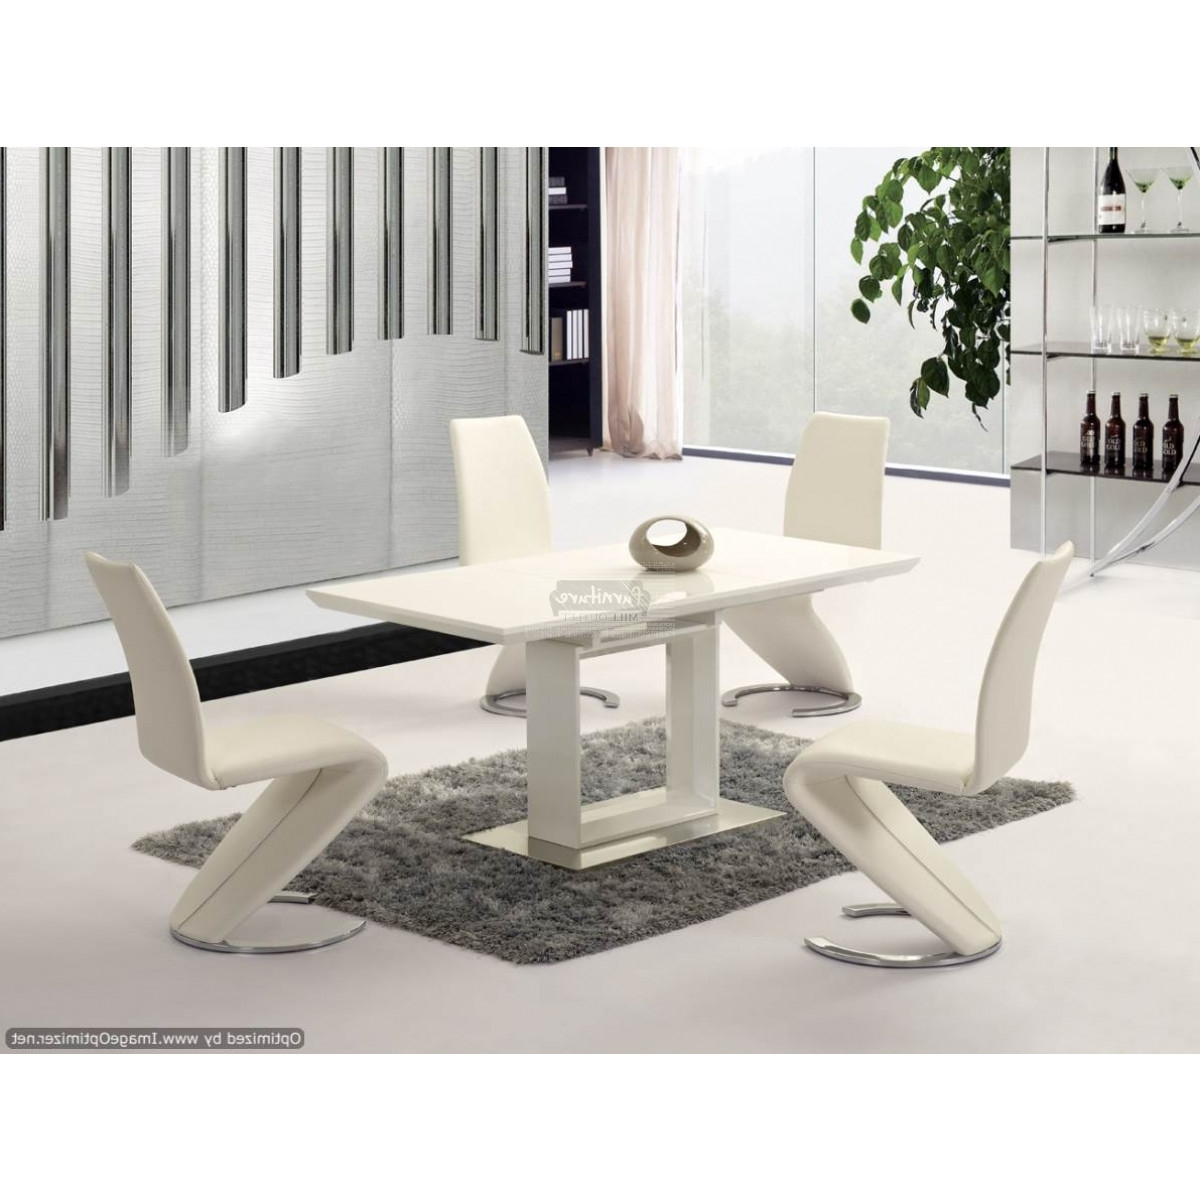 Space White High Gloss Extending Dining Table – 120Cm To 160Cm Inside Favorite White High Gloss Dining Tables (View 6 of 25)